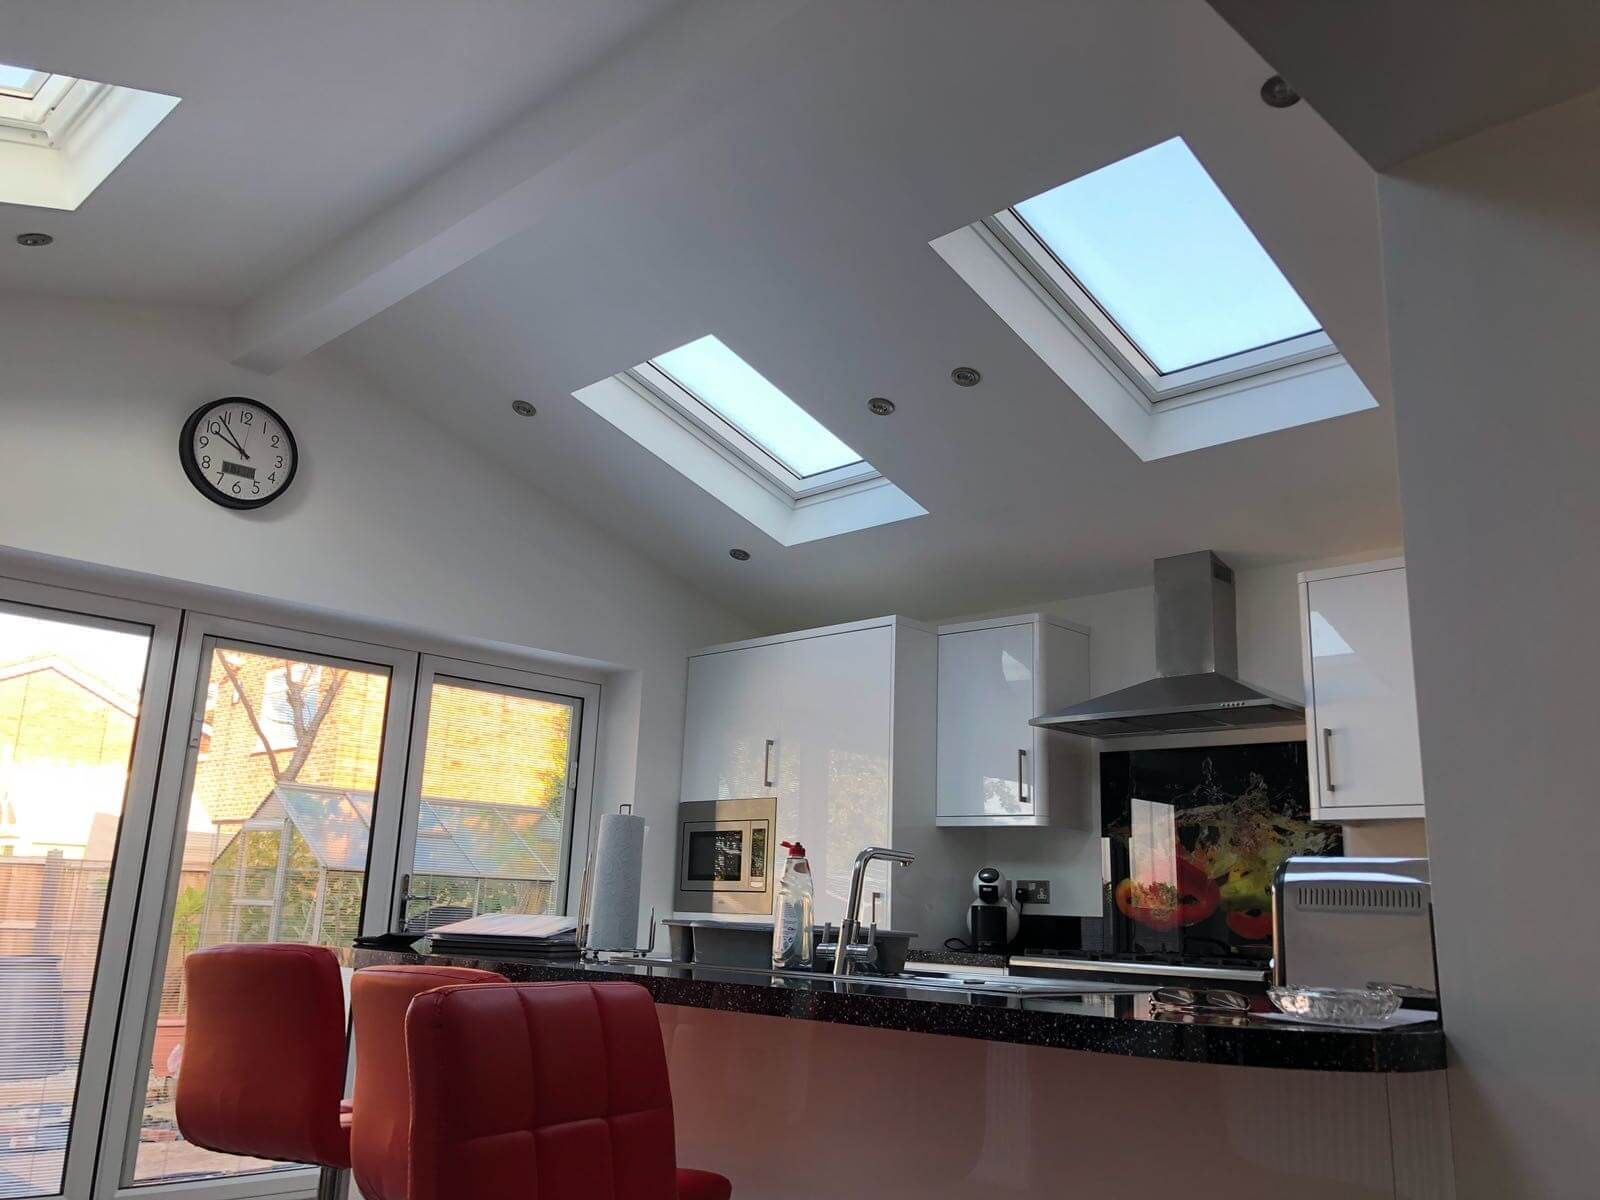 kitchen, design, installation, liverpool, celsius home improvements, extension, skylights